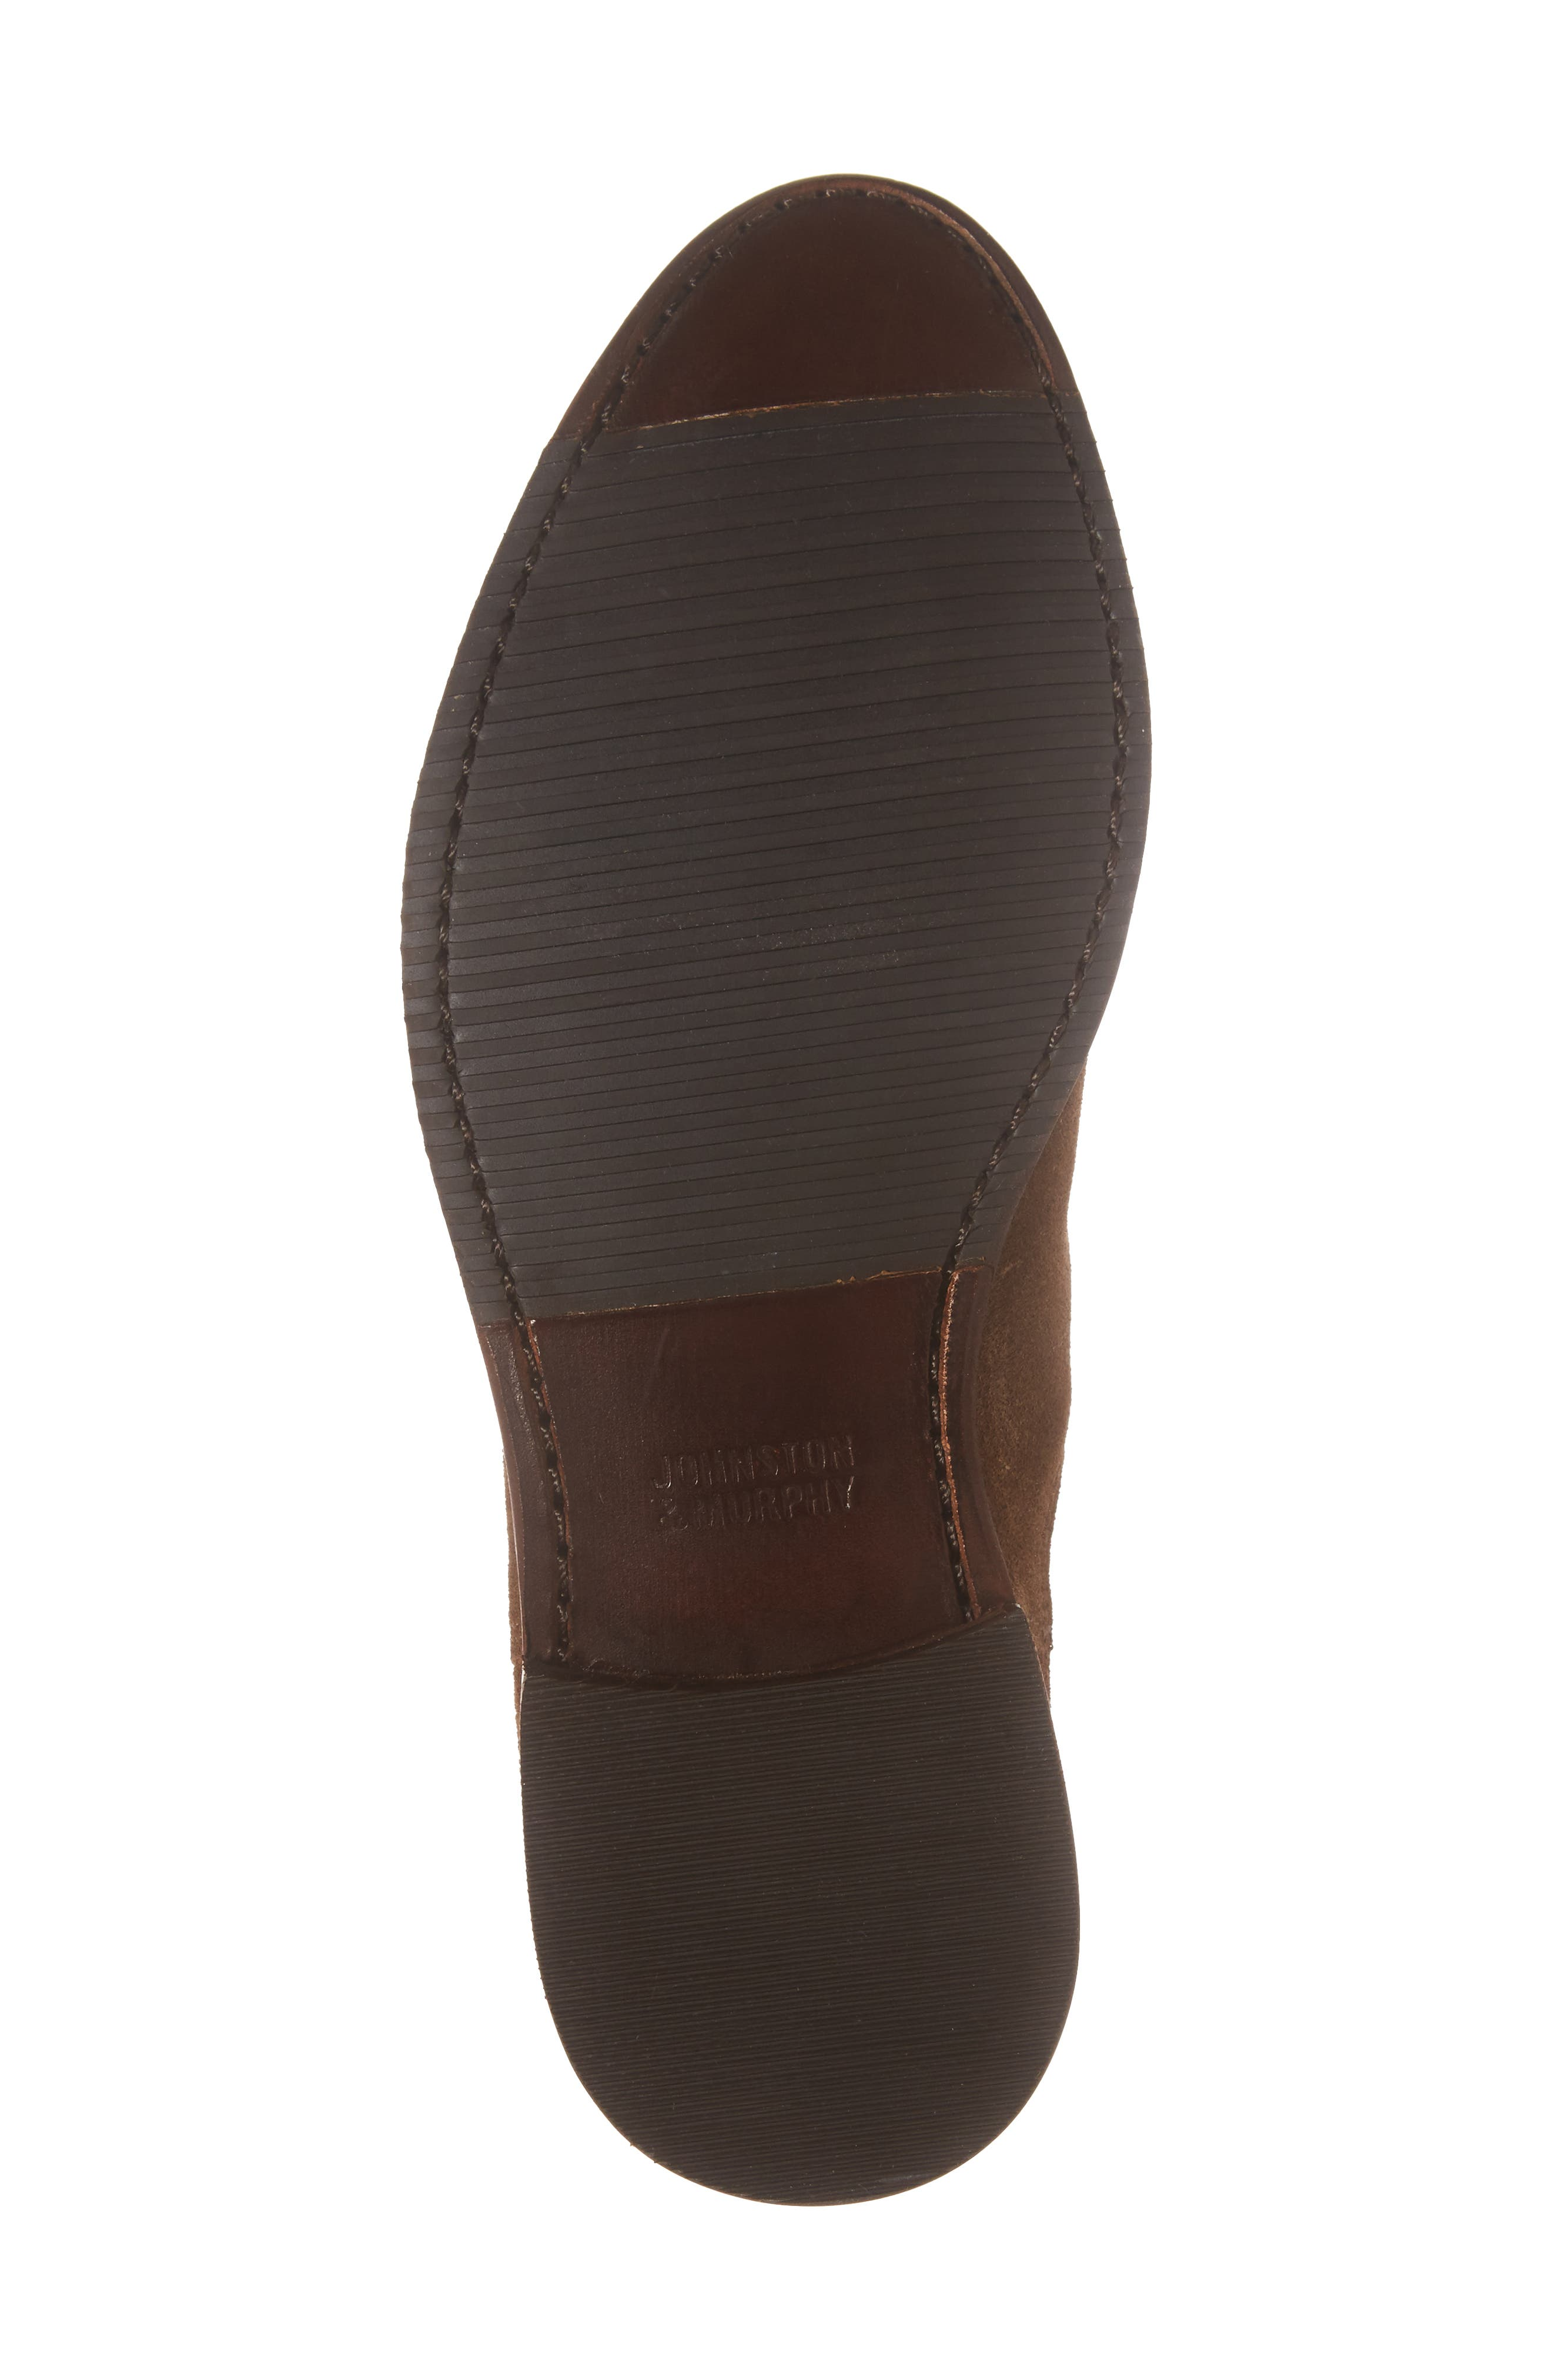 Gabrielle Chelsea Boot,                             Alternate thumbnail 6, color,                             Brown Suede